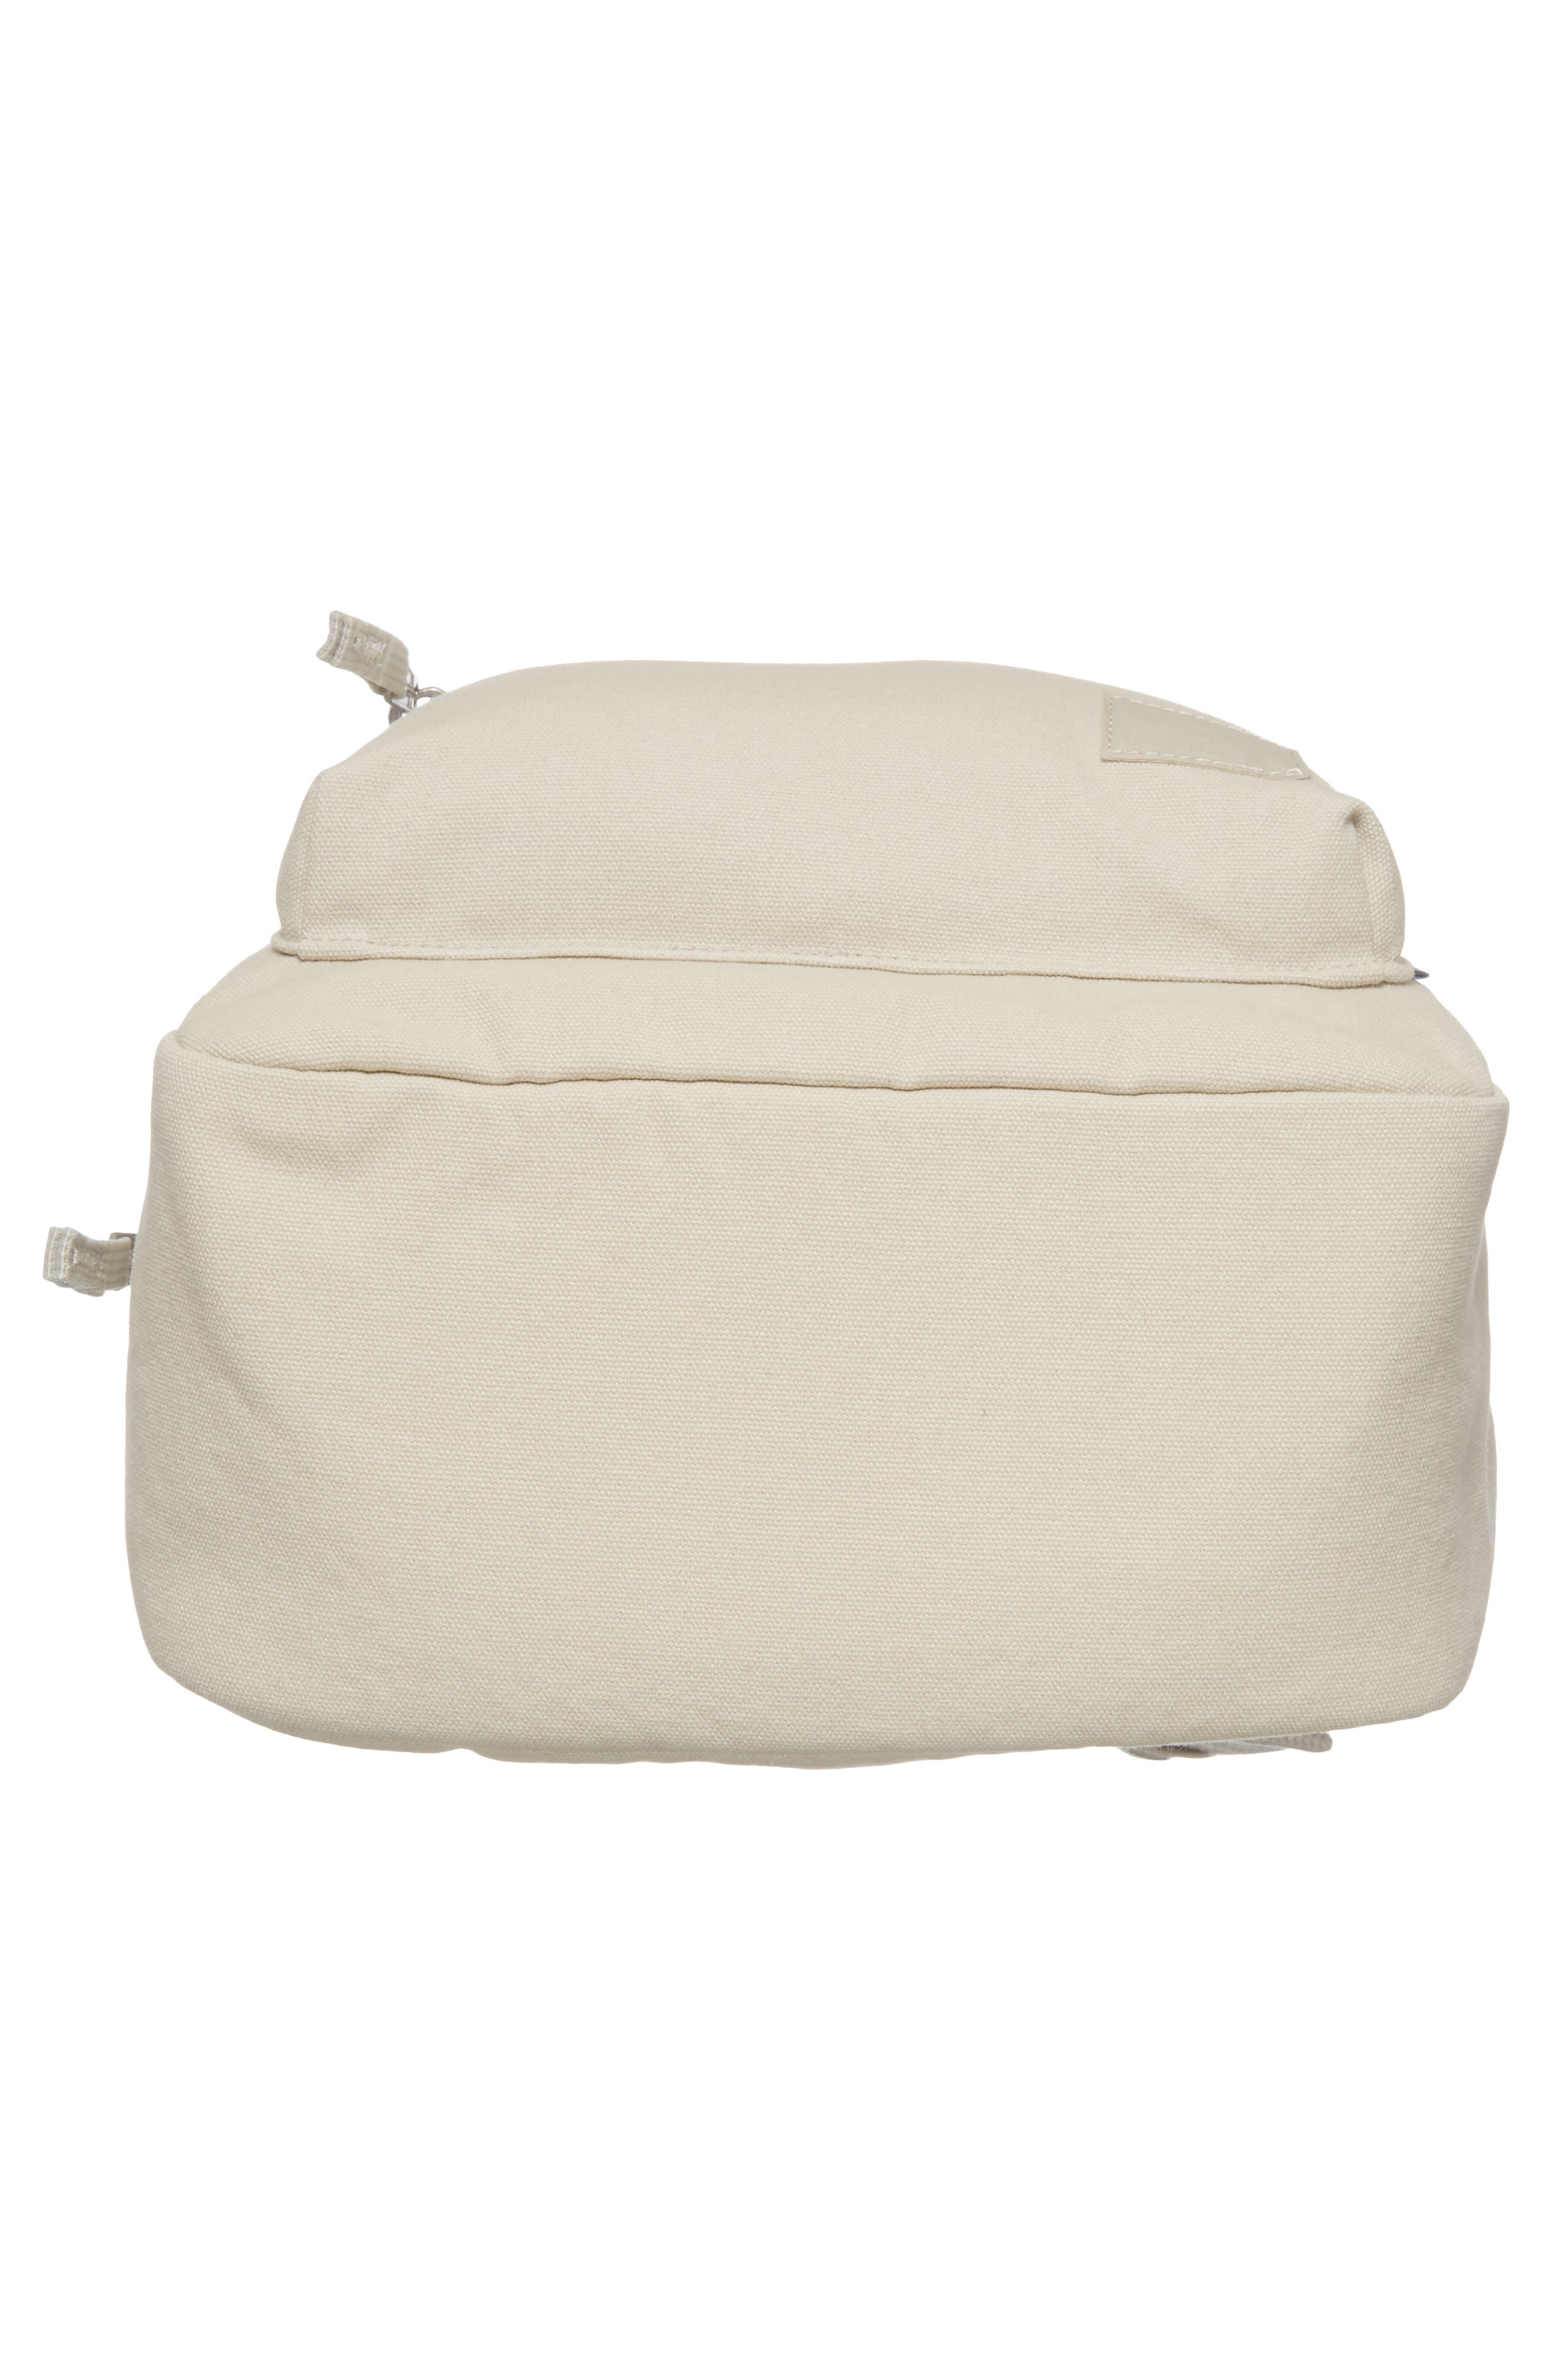 X-Small Grove Cotton Canvas Backpack,                             Alternate thumbnail 22, color,